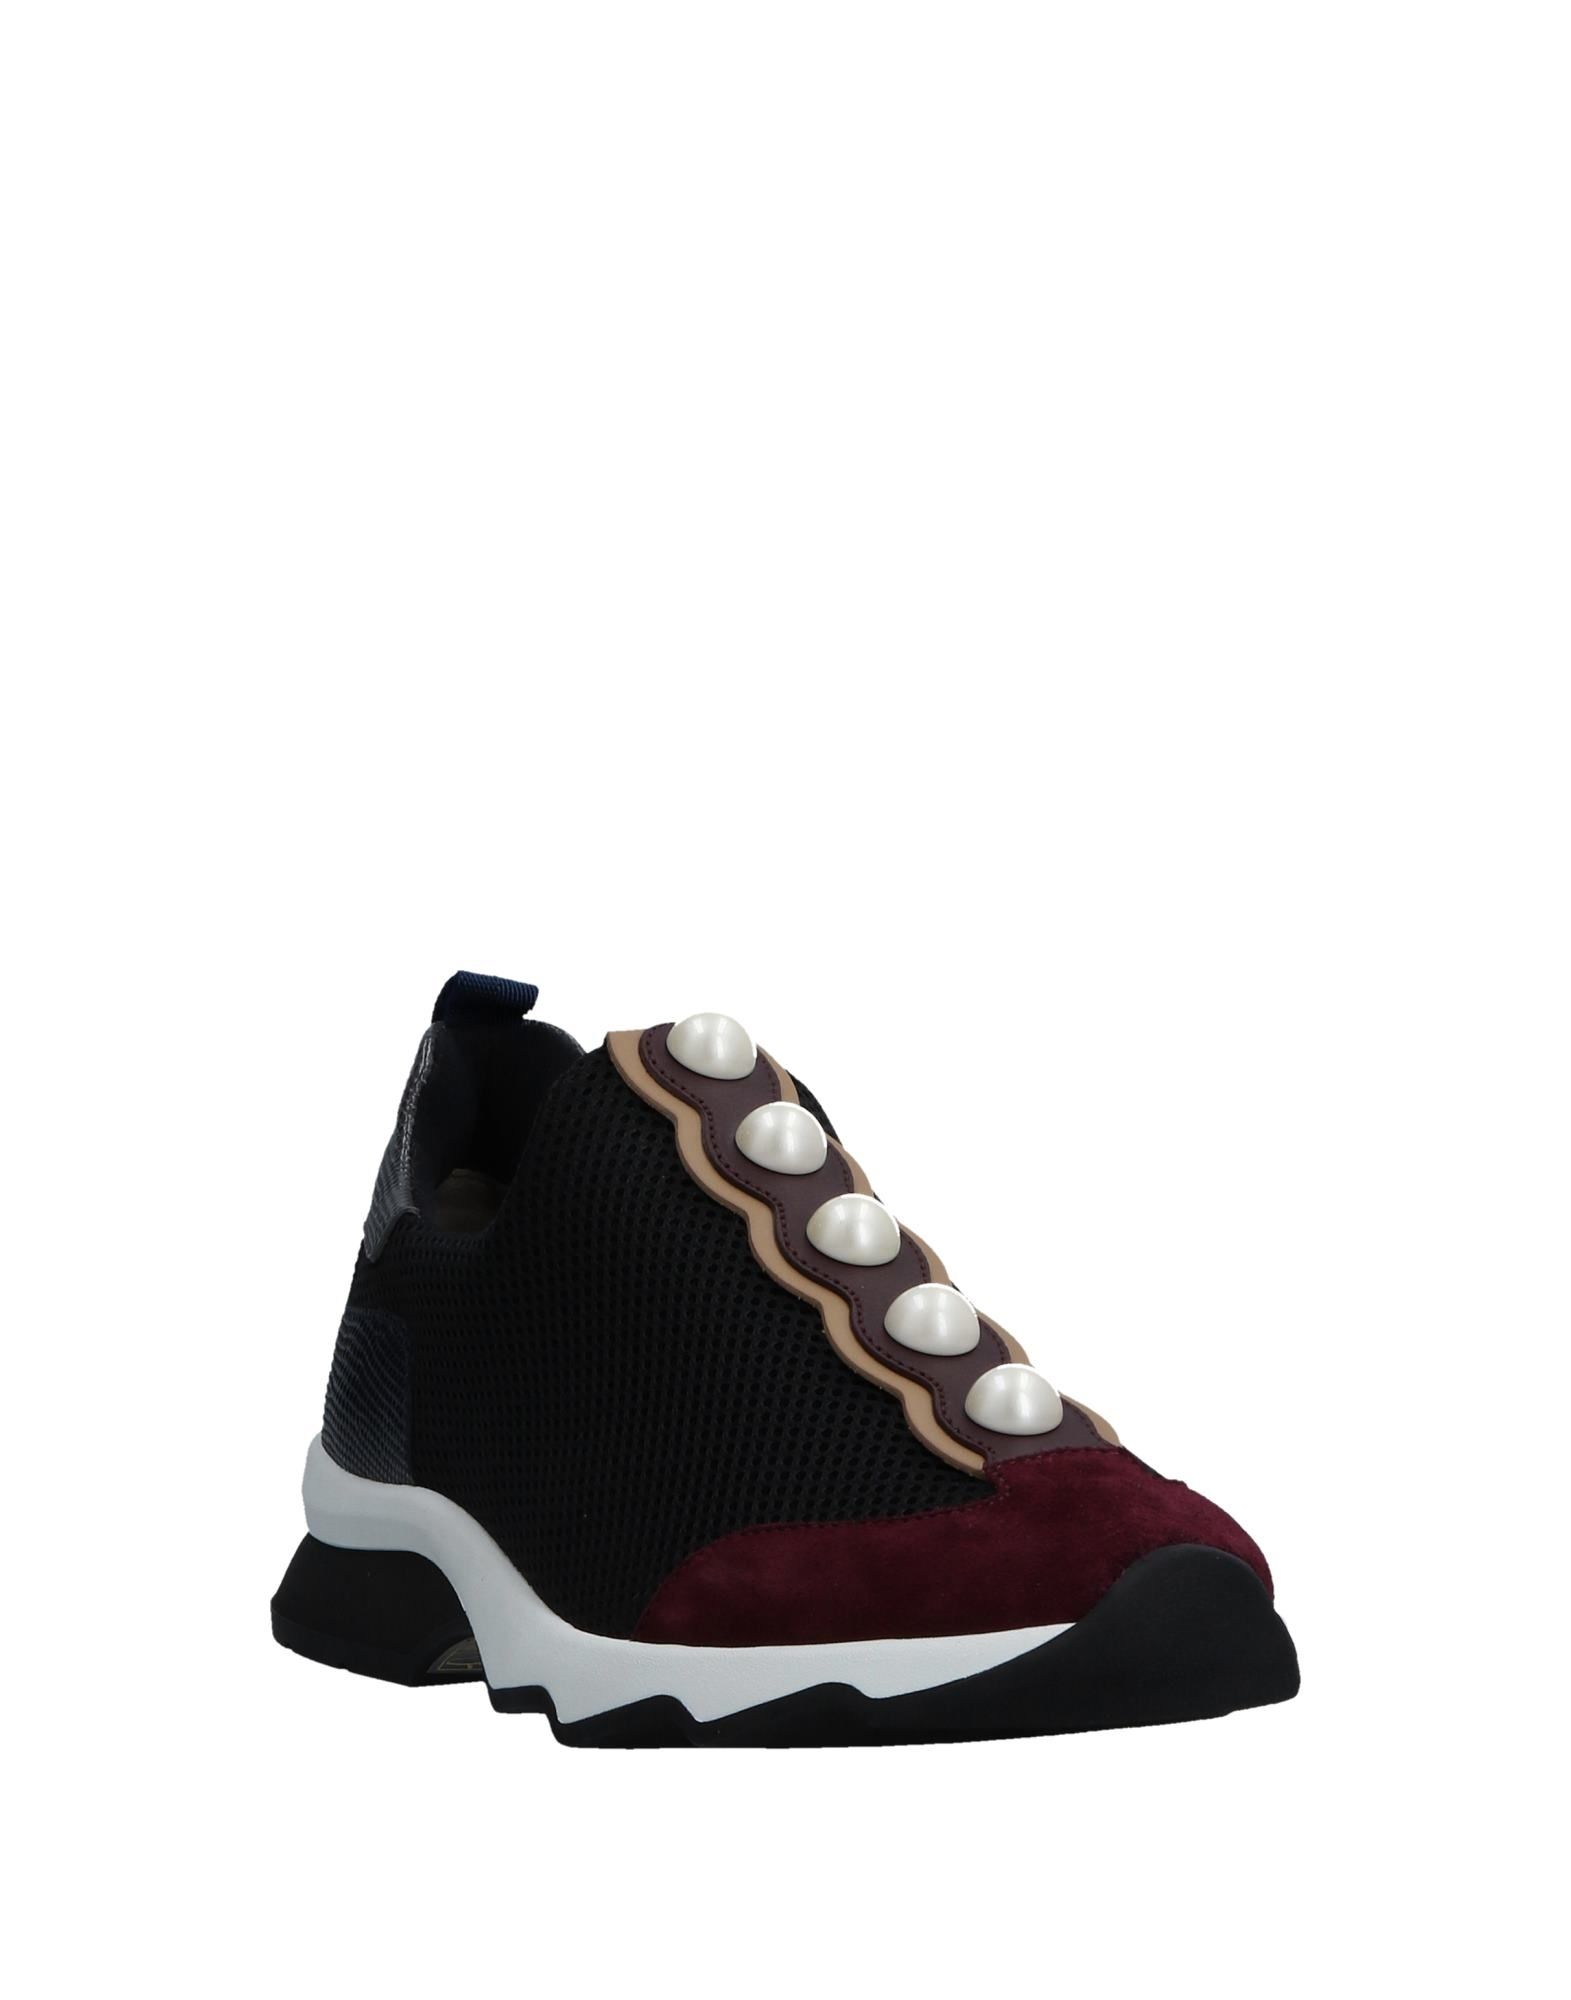 Fendi Sneakers - Women Fendi Fendi Fendi Sneakers online on  Canada - 11528198SL 6822d0